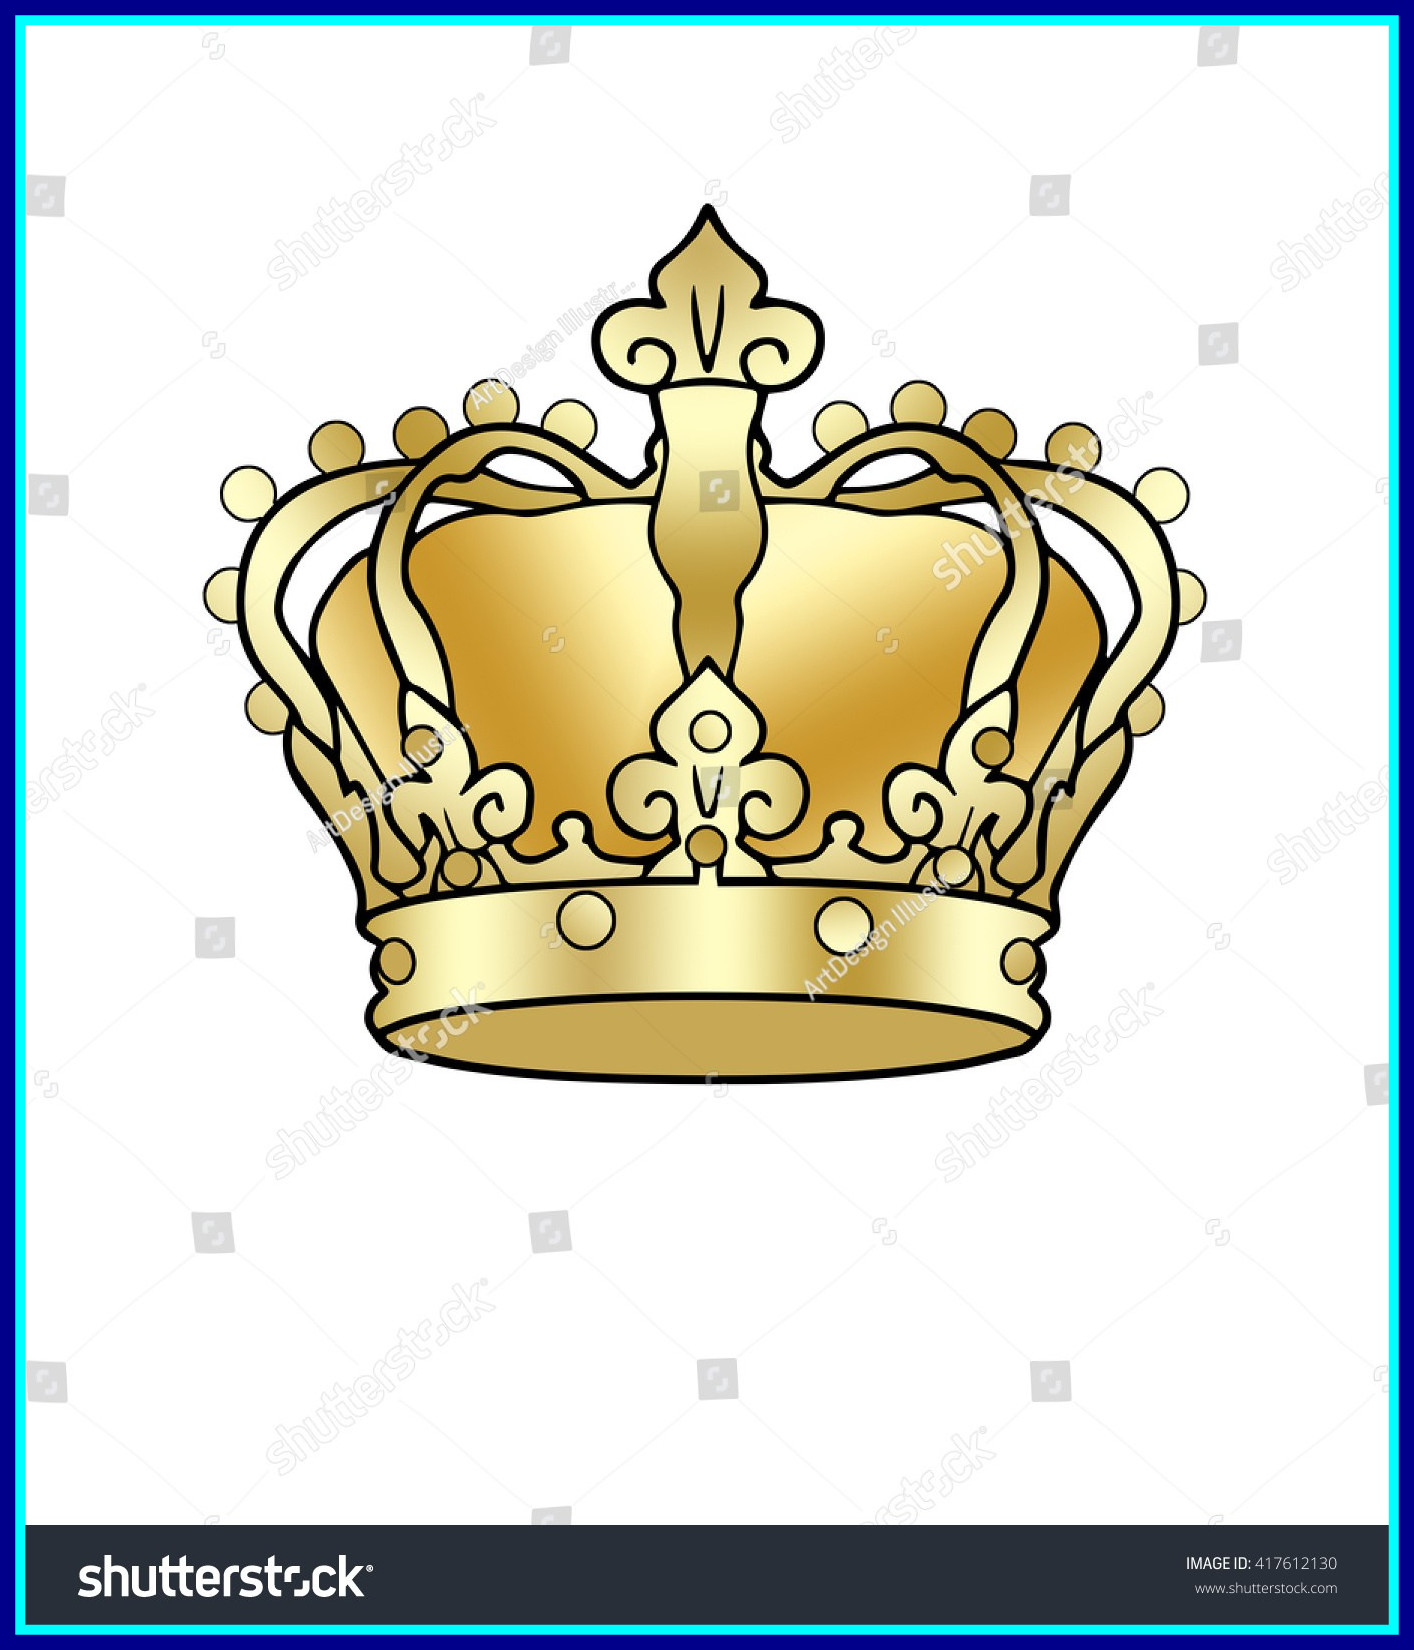 hight resolution of 1414x1650 incredible crowns clipart king clip art vintage golden graphics